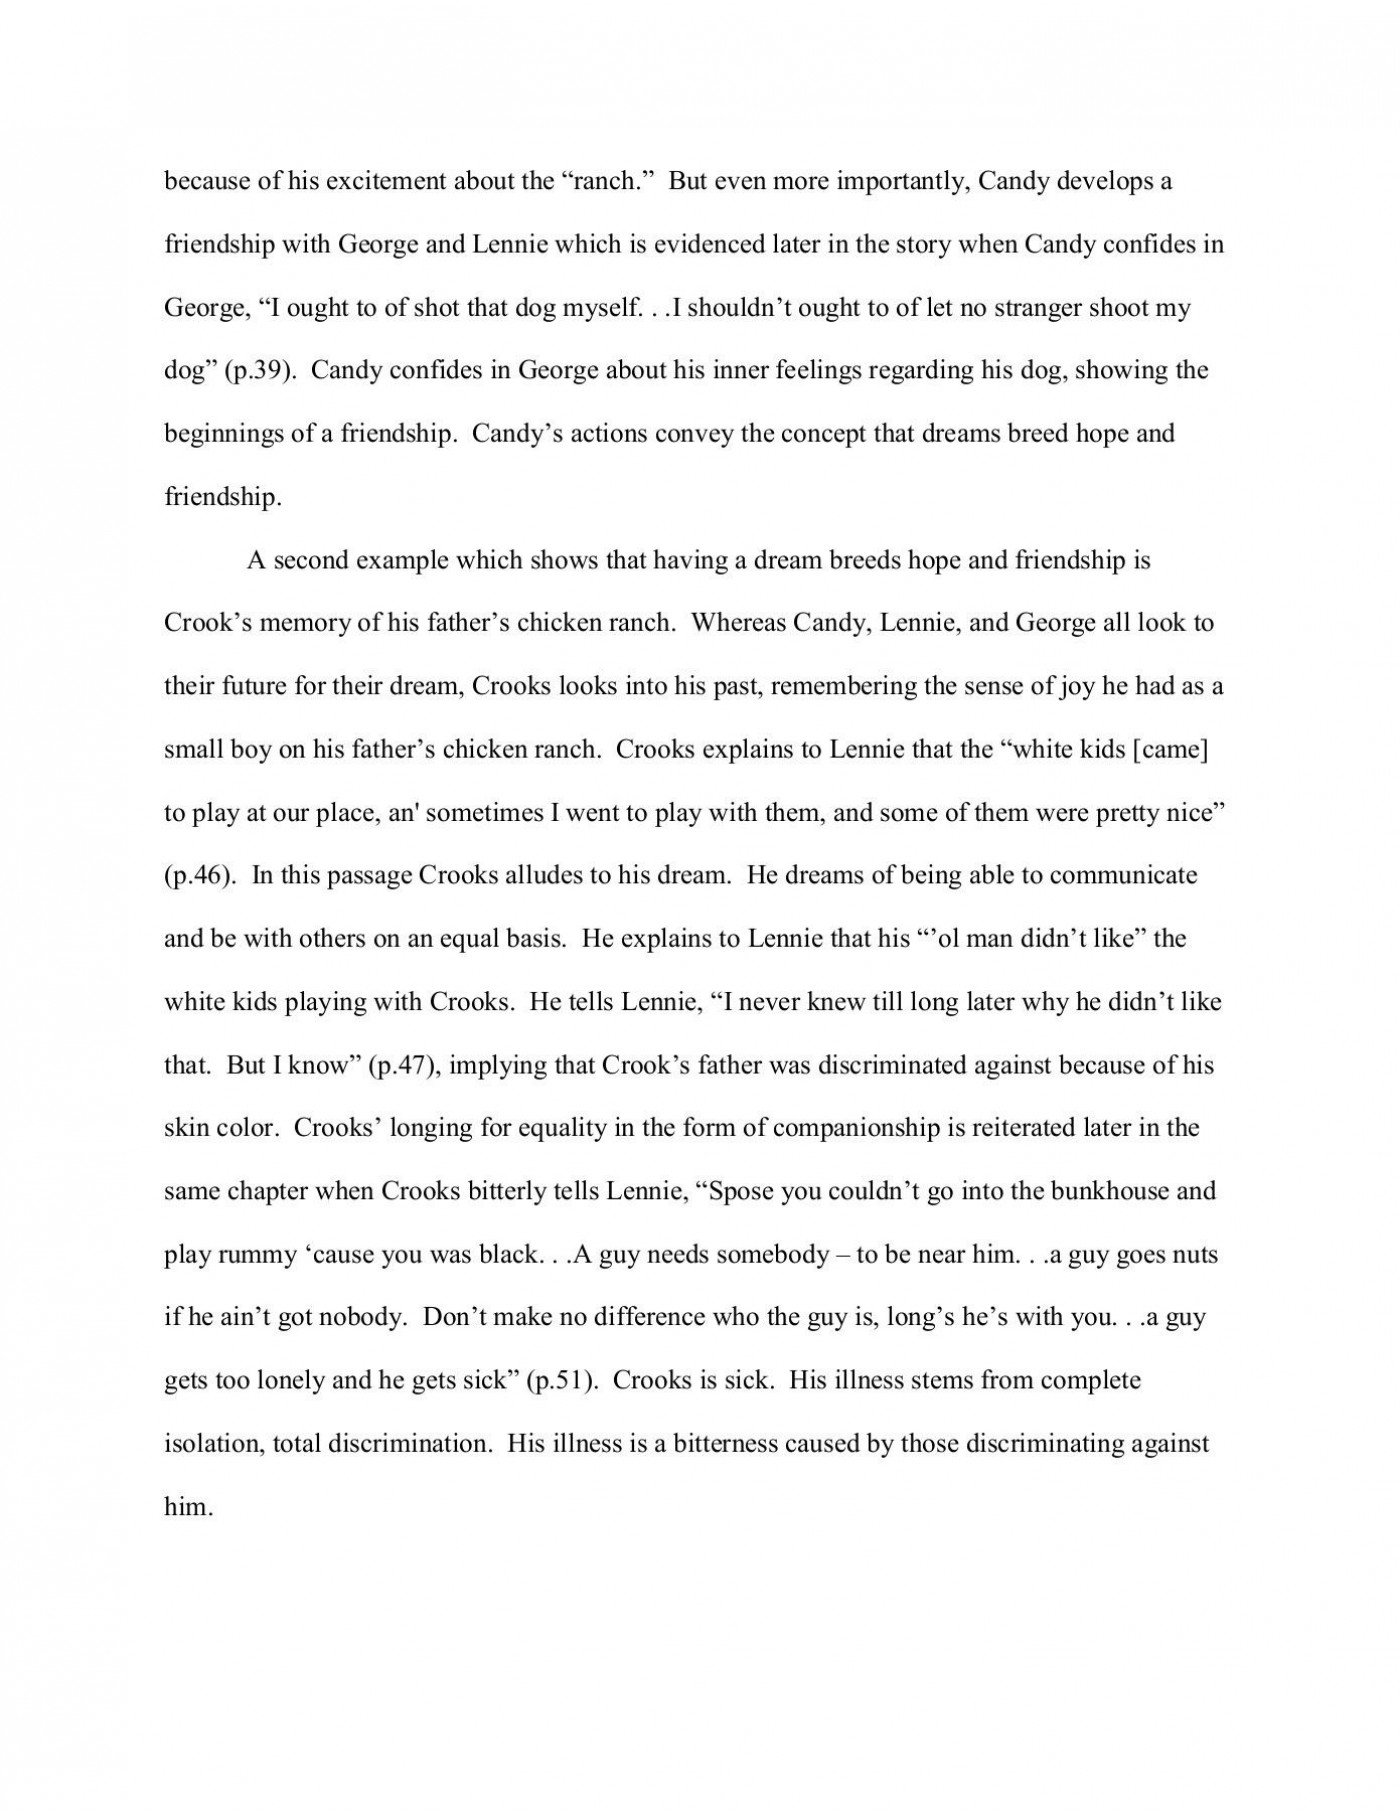 000 Wonderful Of Mice And Men Essay Sample  Prompt Topic1400